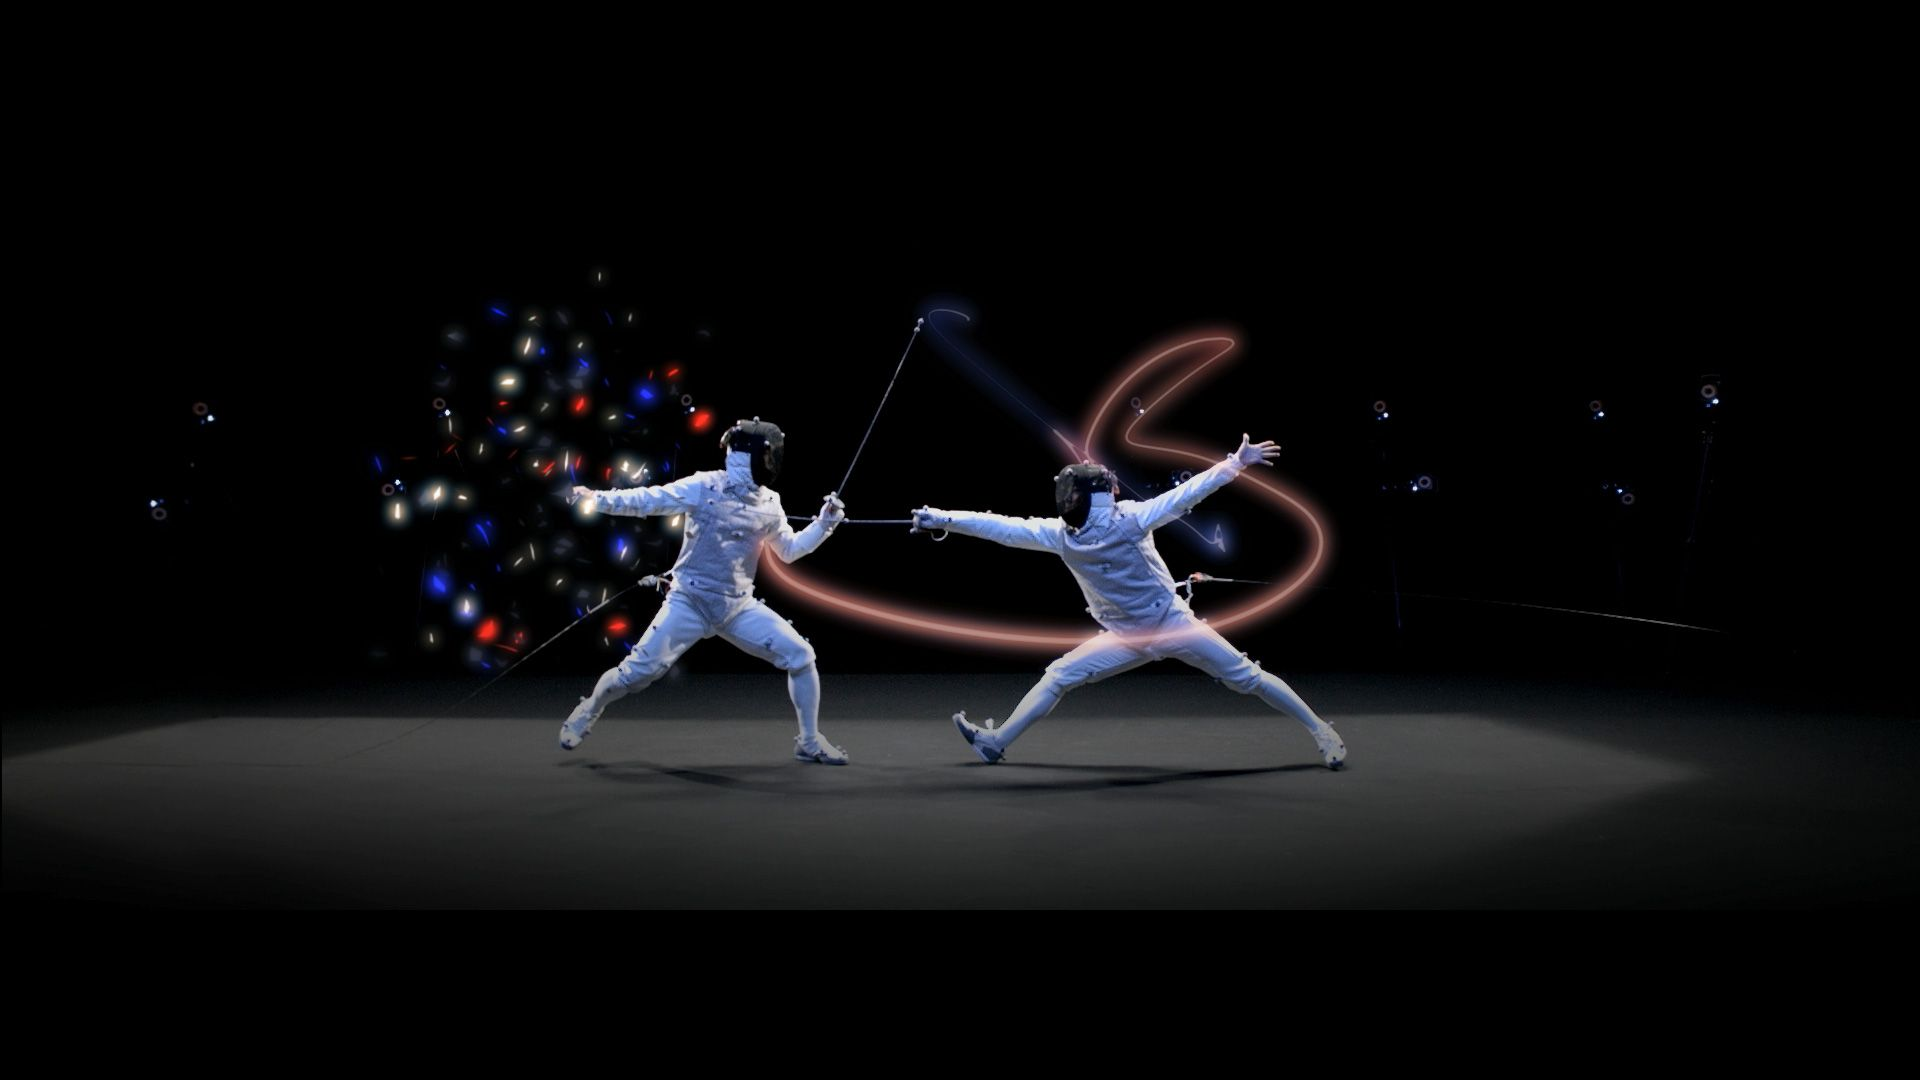 Fencing 1080p background